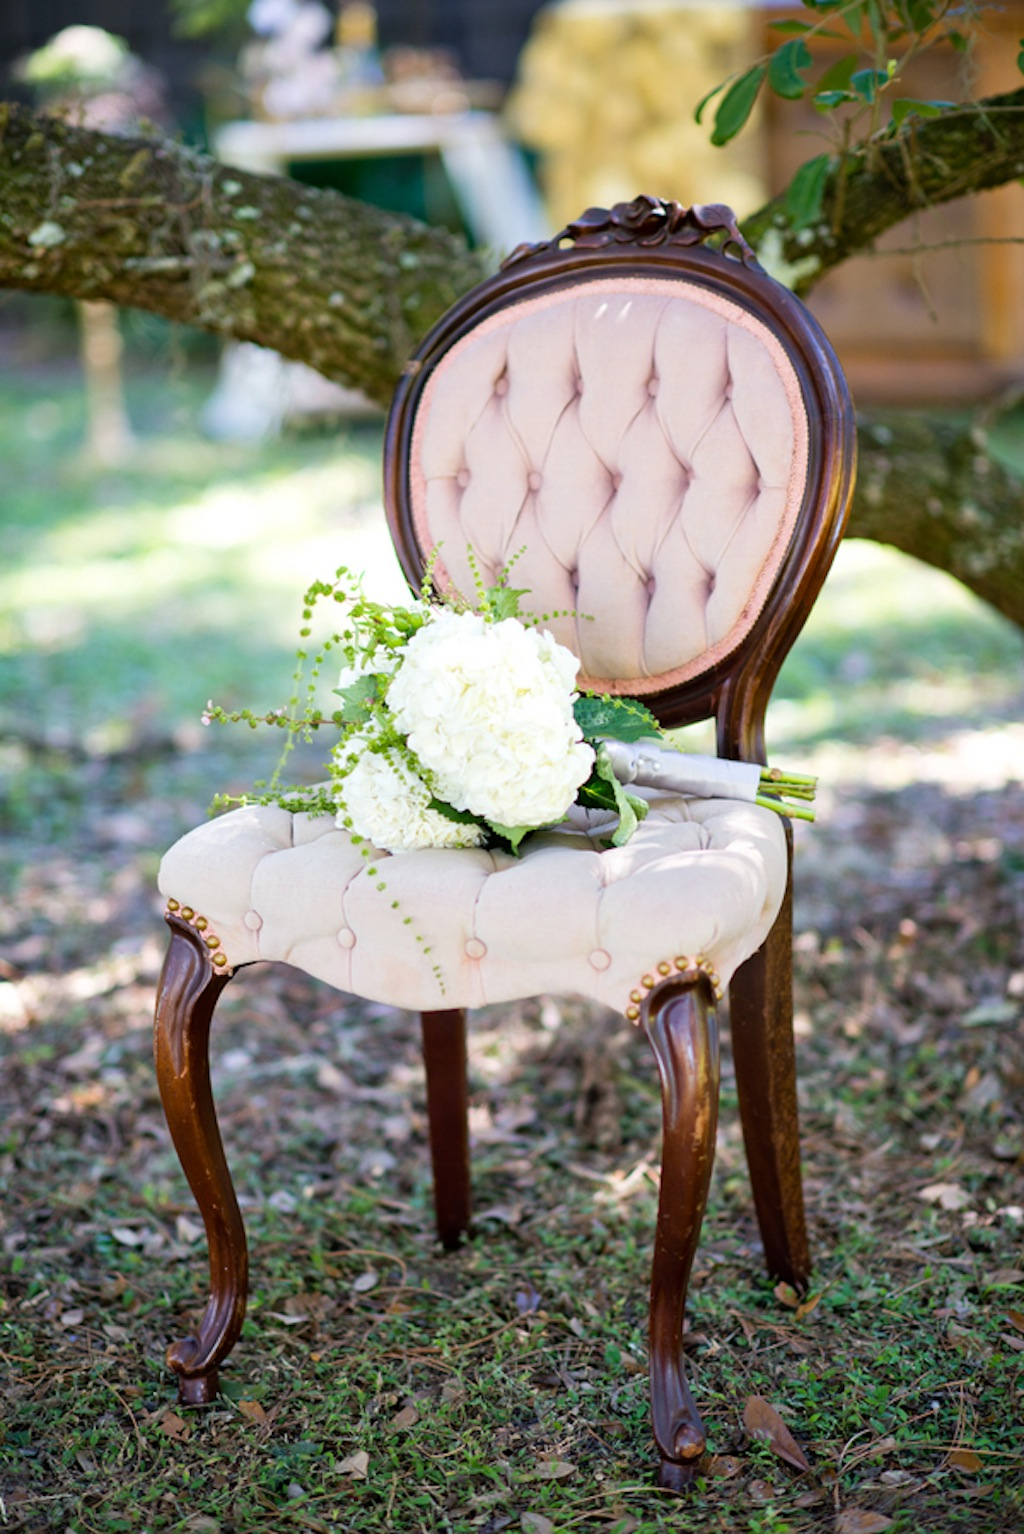 Tufted Vintage Chair Rental with White Wedding Bouquet   Vintage, Garden Wedding Styled Shoot